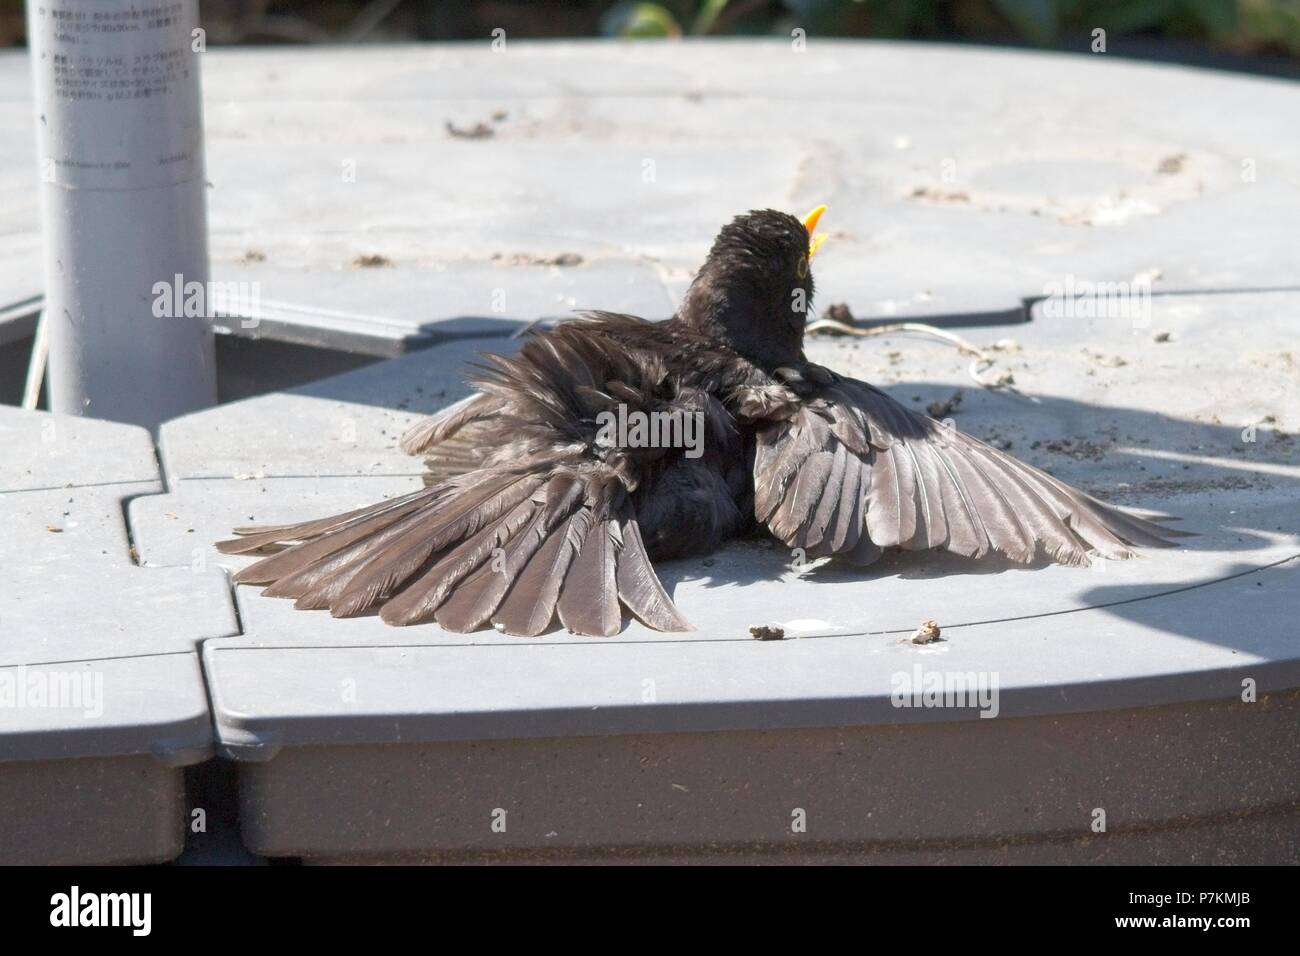 7th Jul 2018. UK weather. A male Blackbird (Terdus merula) suns itself in a garden in Sussex. As the hot weather continues, wildlife finds it increasingly difficult to keep cool. East Sussex, UK. Credit: Ed Brown/Alamy Live News - Stock Image